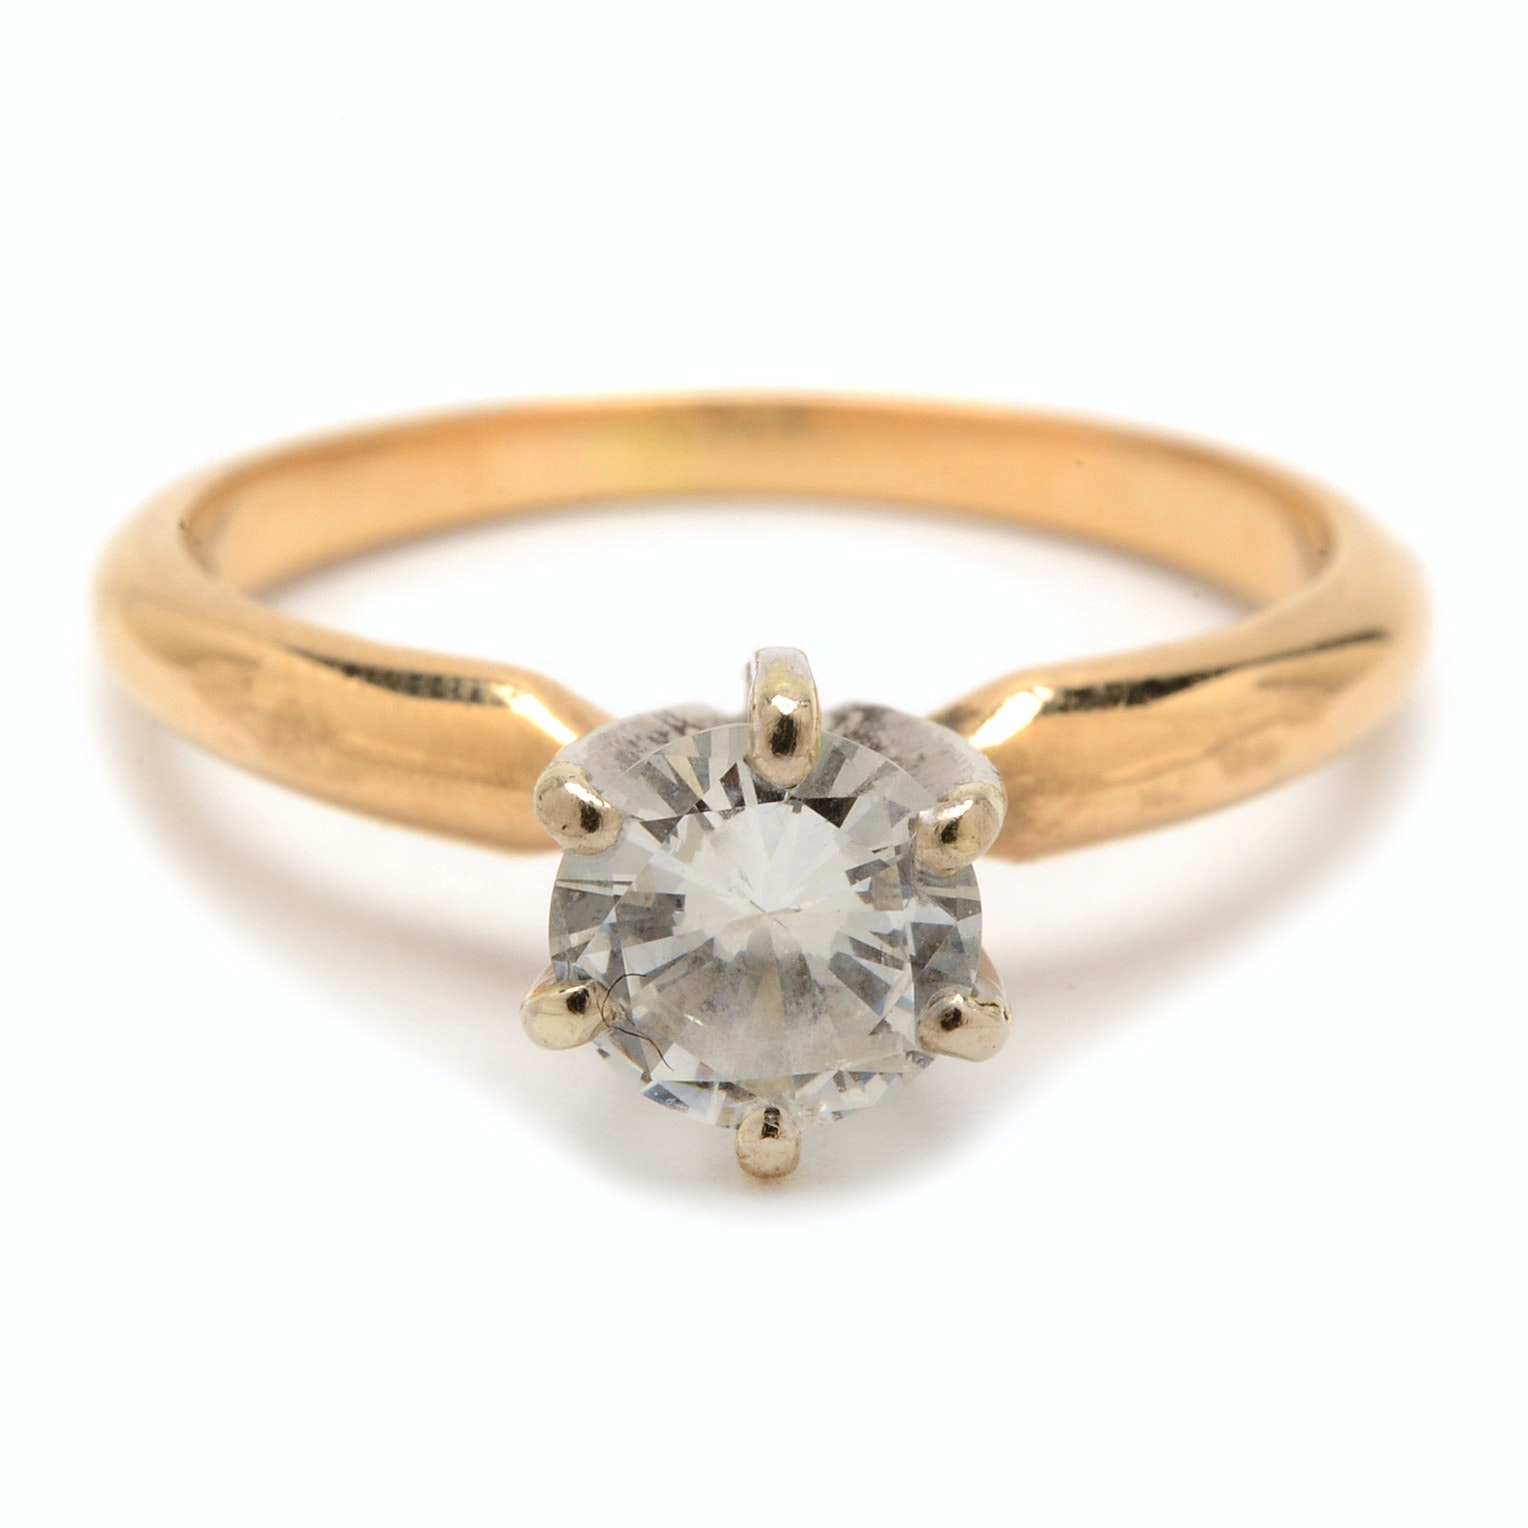 14K Yellow Gold Solitaire Diamond Engagement Ring